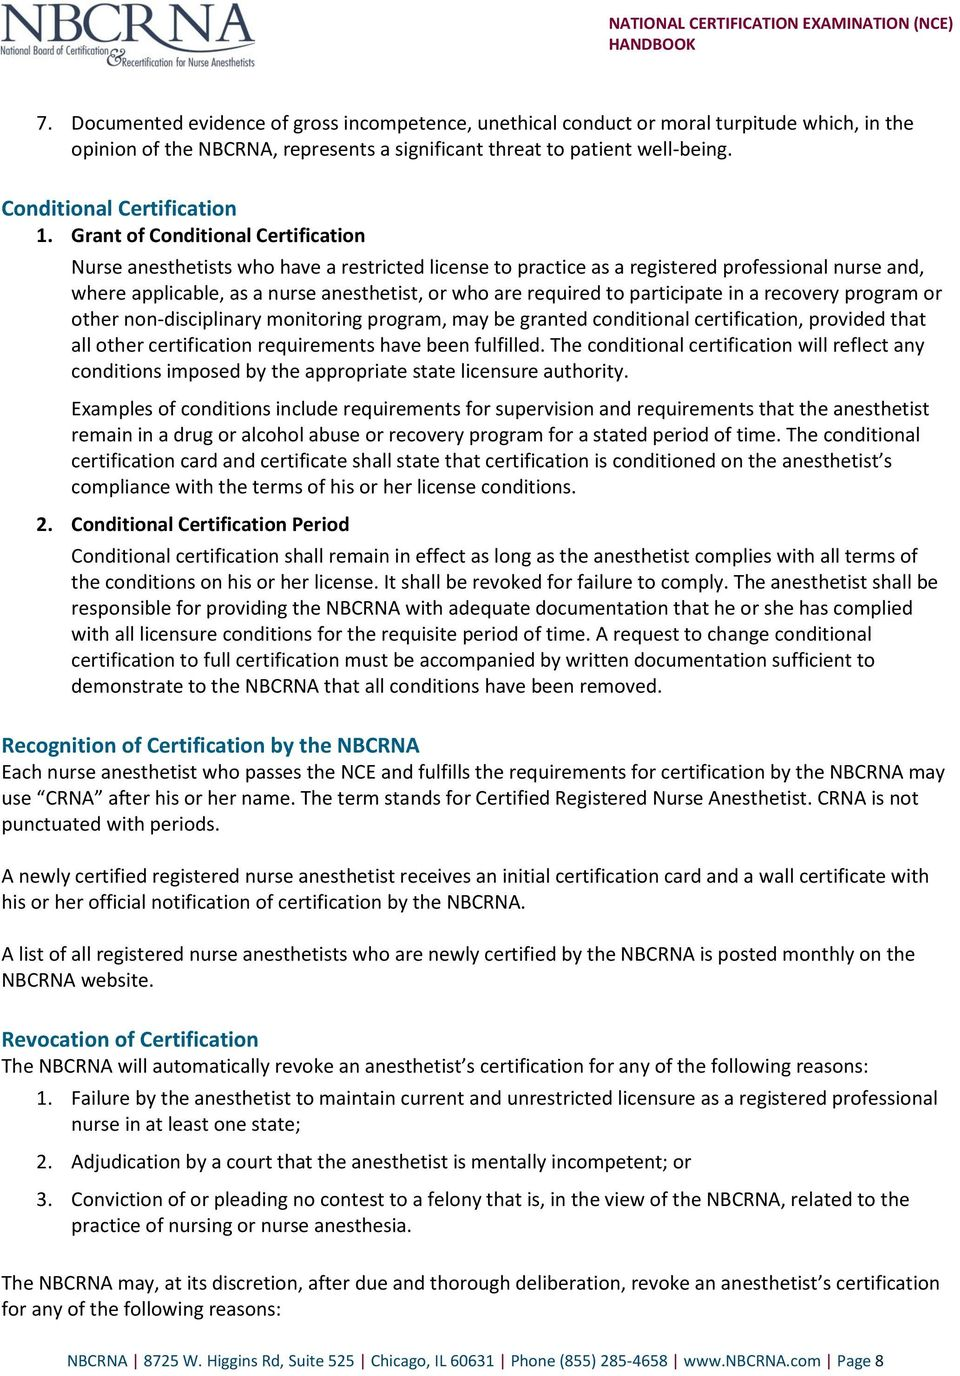 National Certification Examination Nce Handbook Pdf